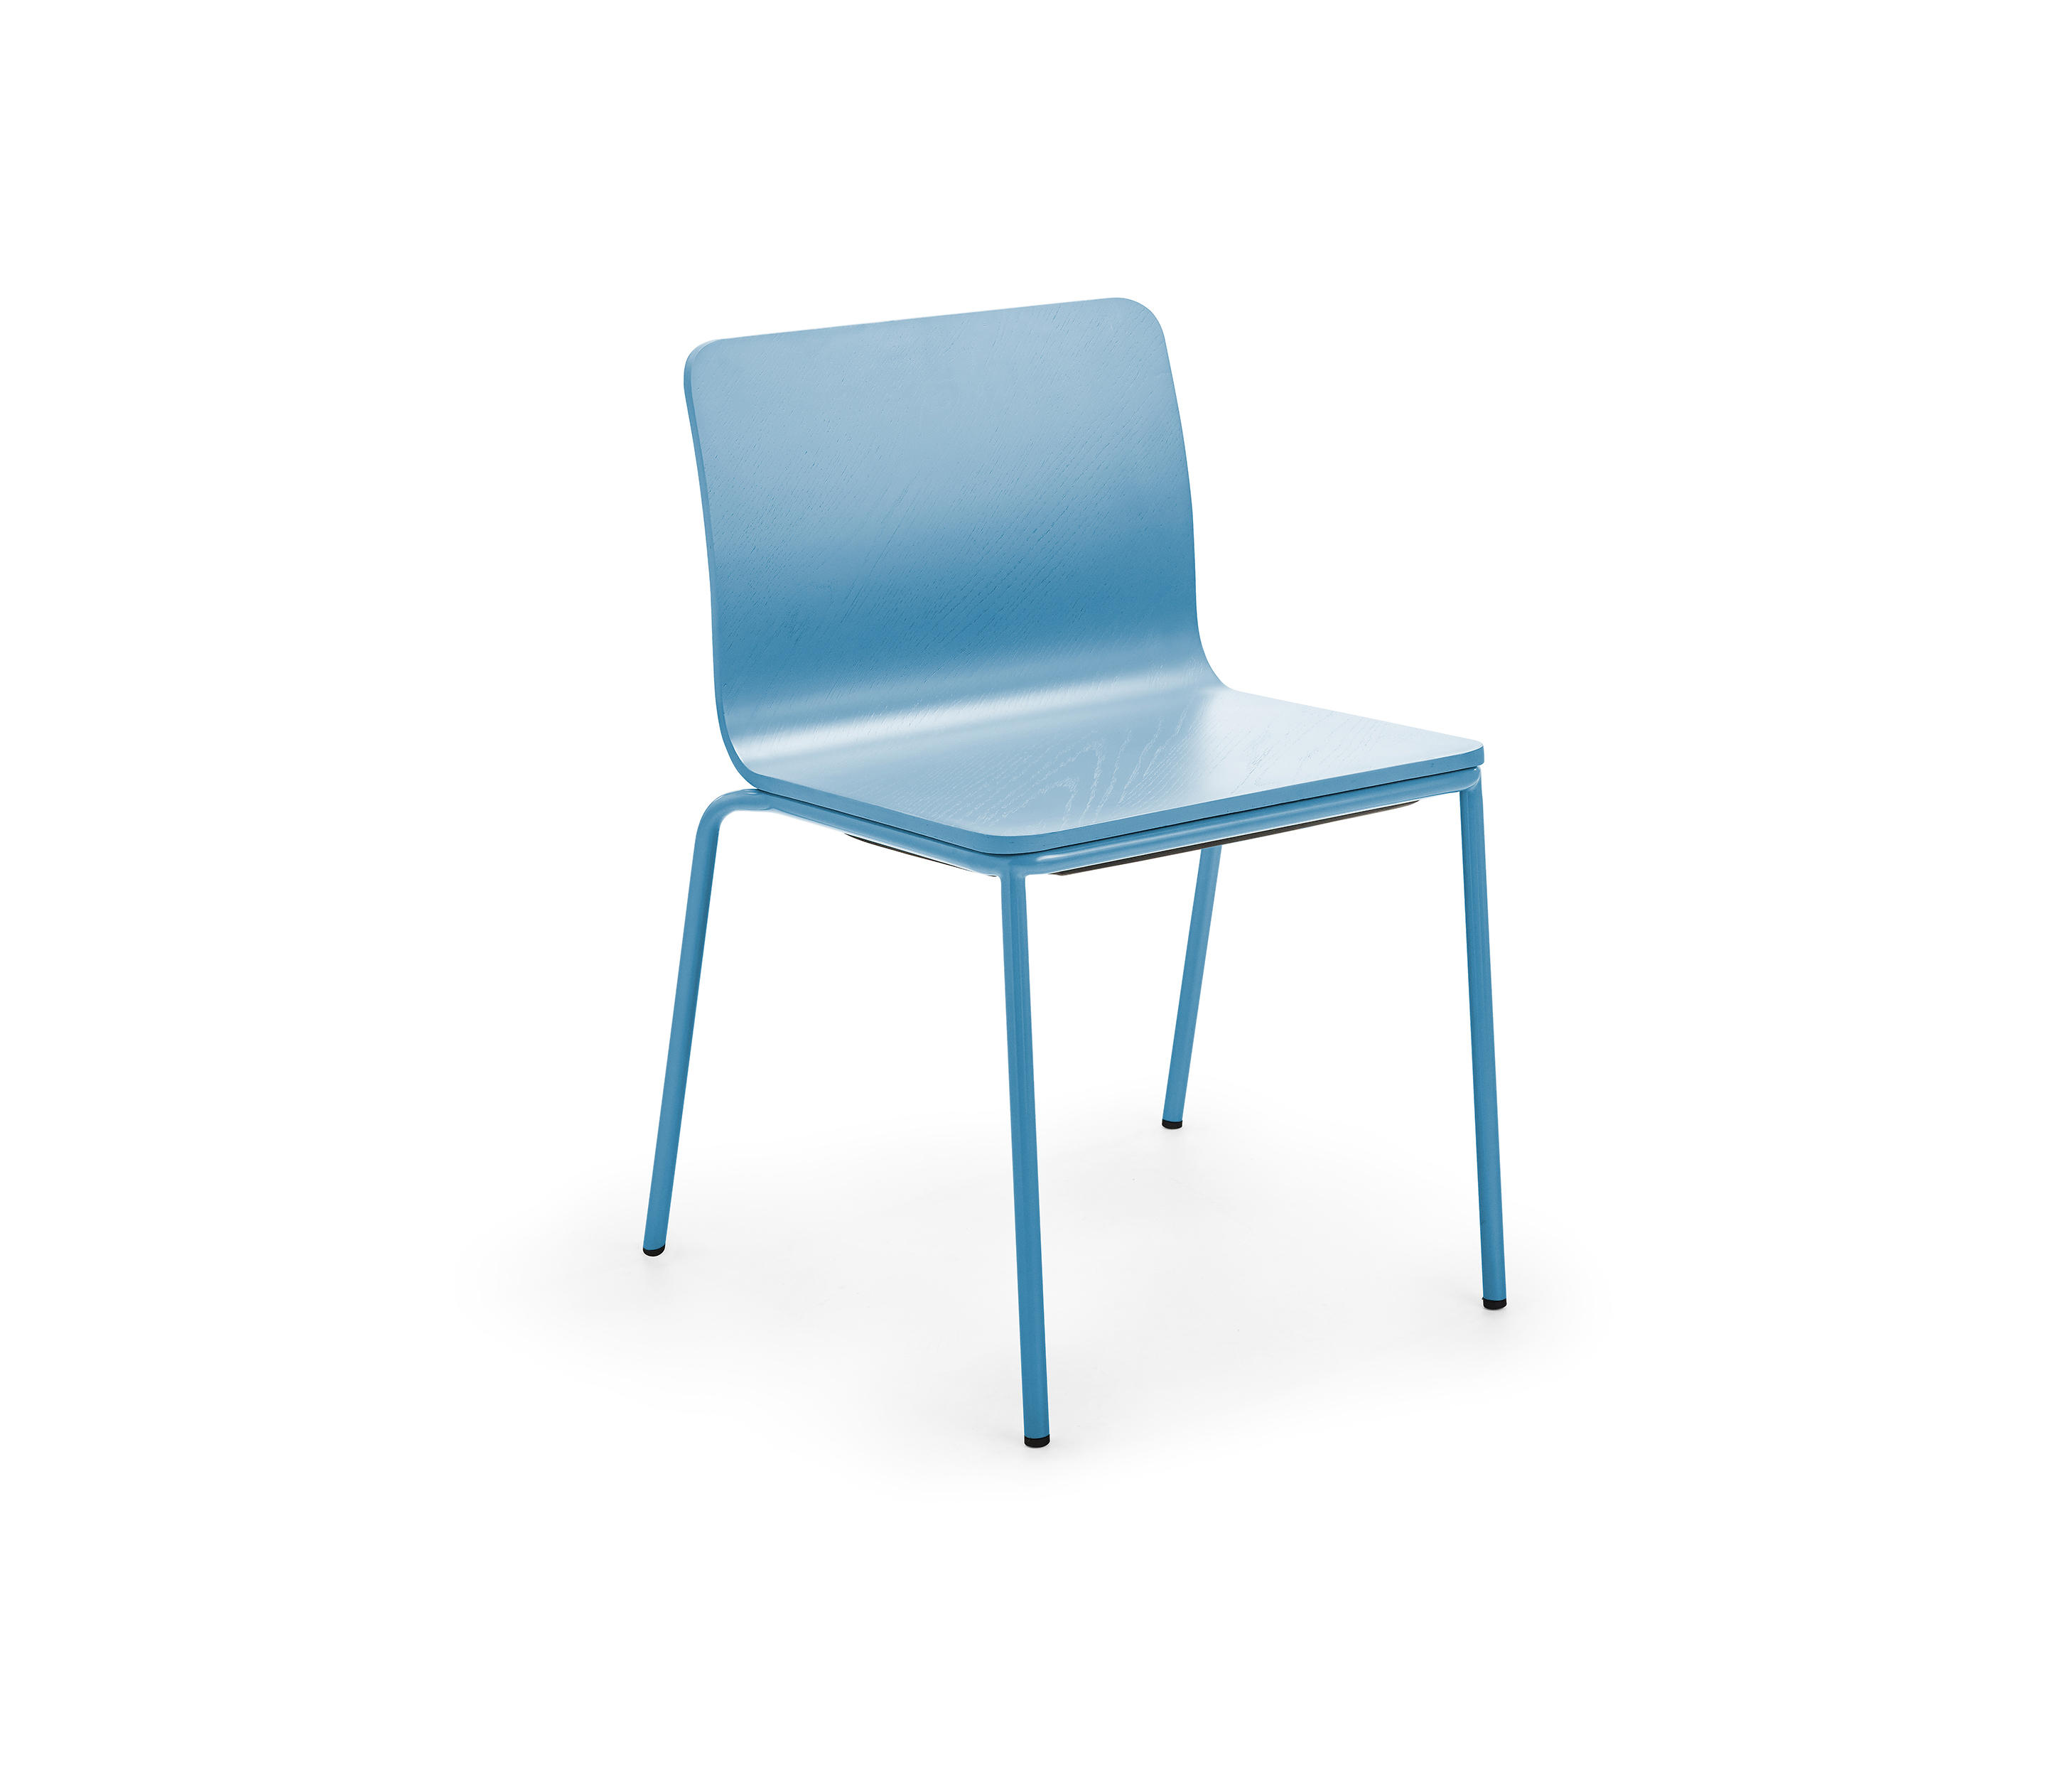 LES CHAIR BLUE Multipurpose chairs from Les Basic